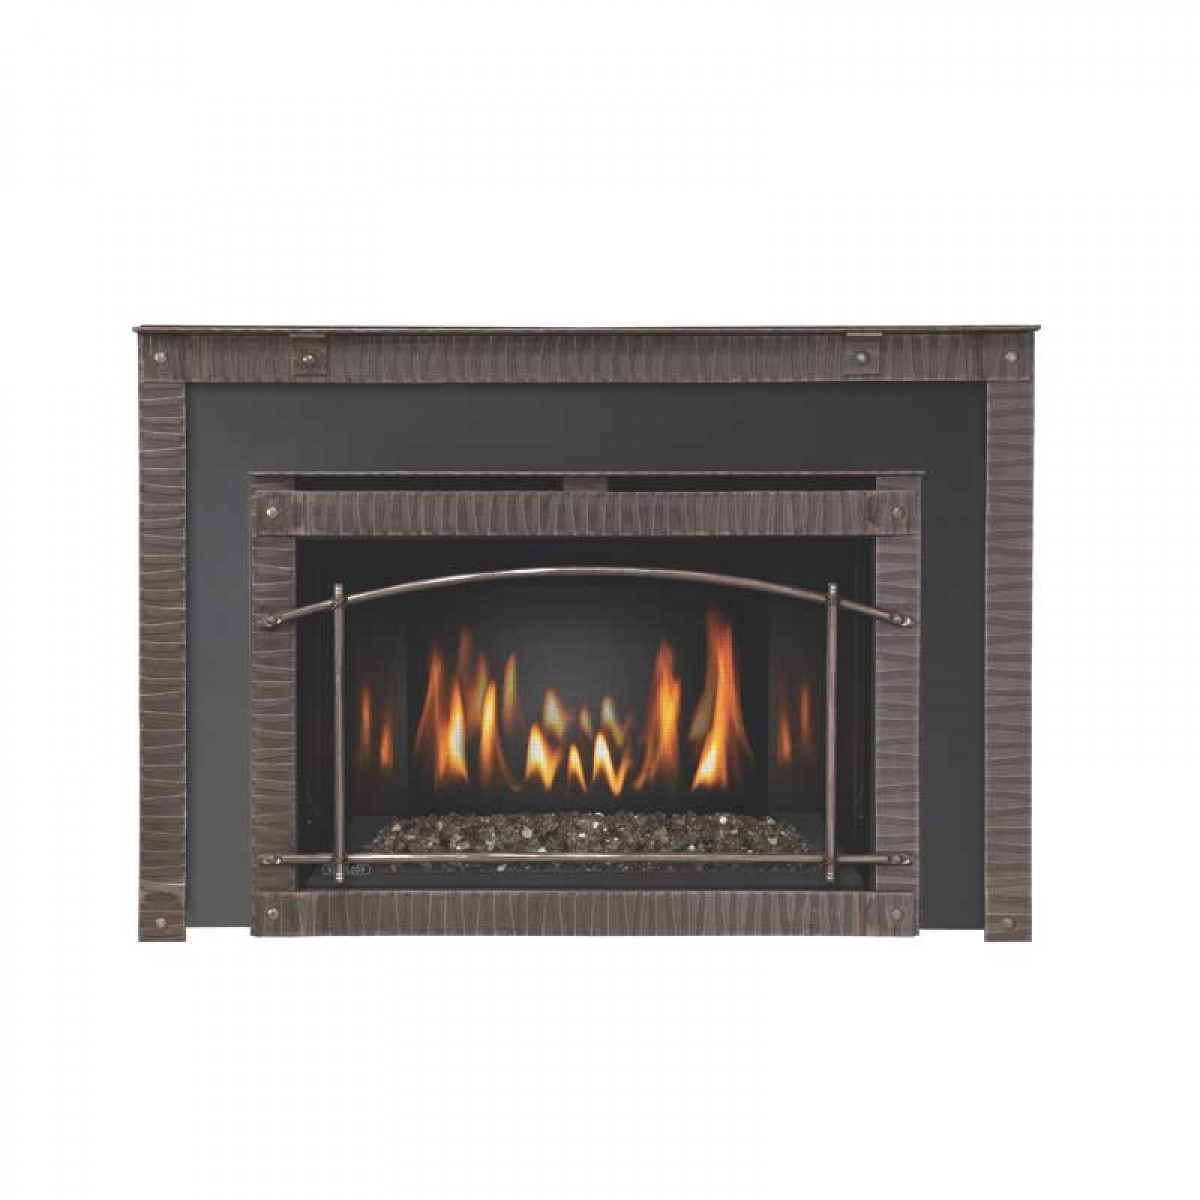 Napoleon Ir3gn Basic Fireplace Insert At Ibuyfireplaces